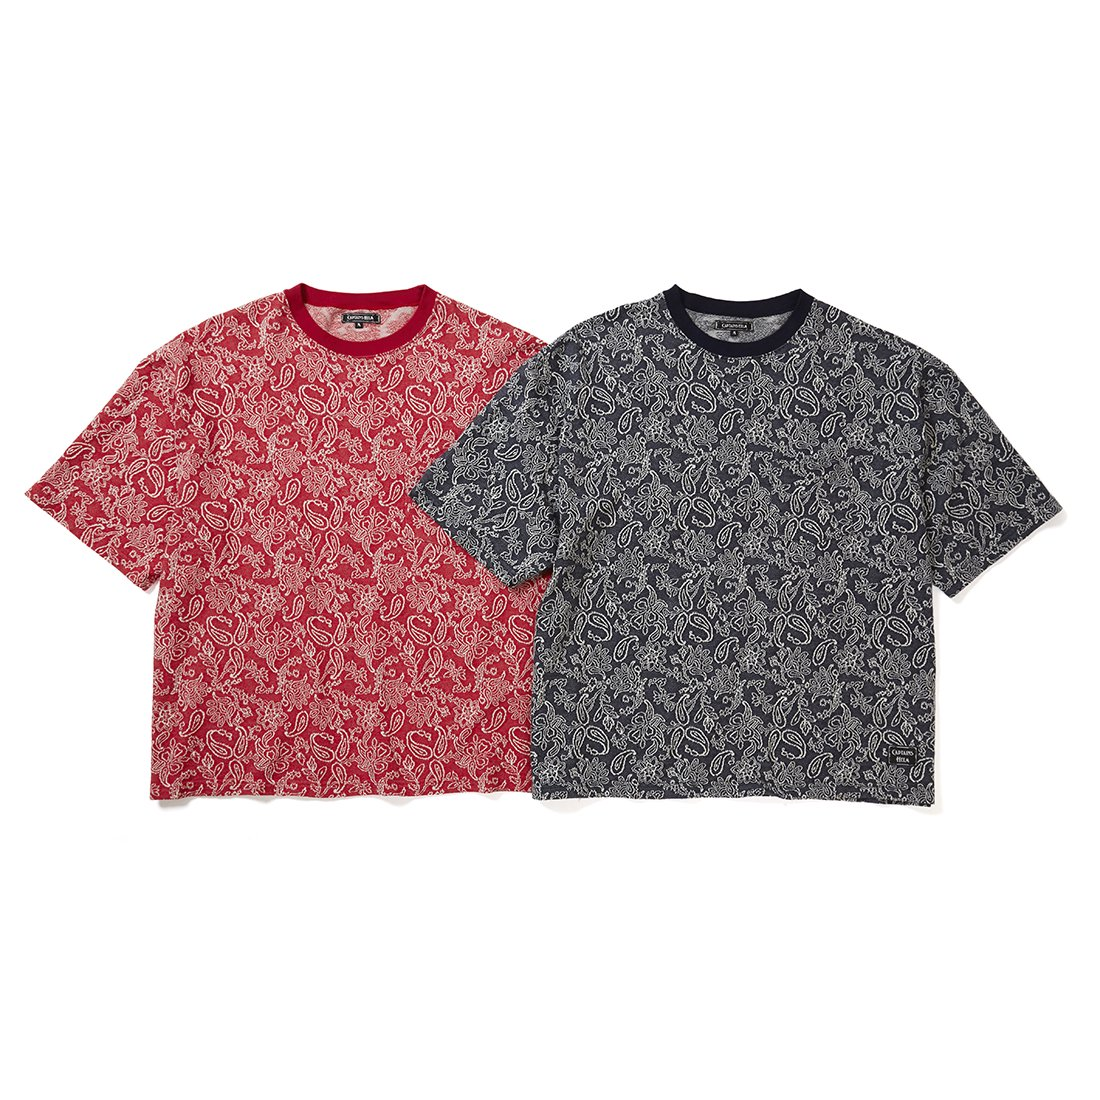 CAPTAINS HELM #JACQUARD PAISLEY BIG POCKET TEE